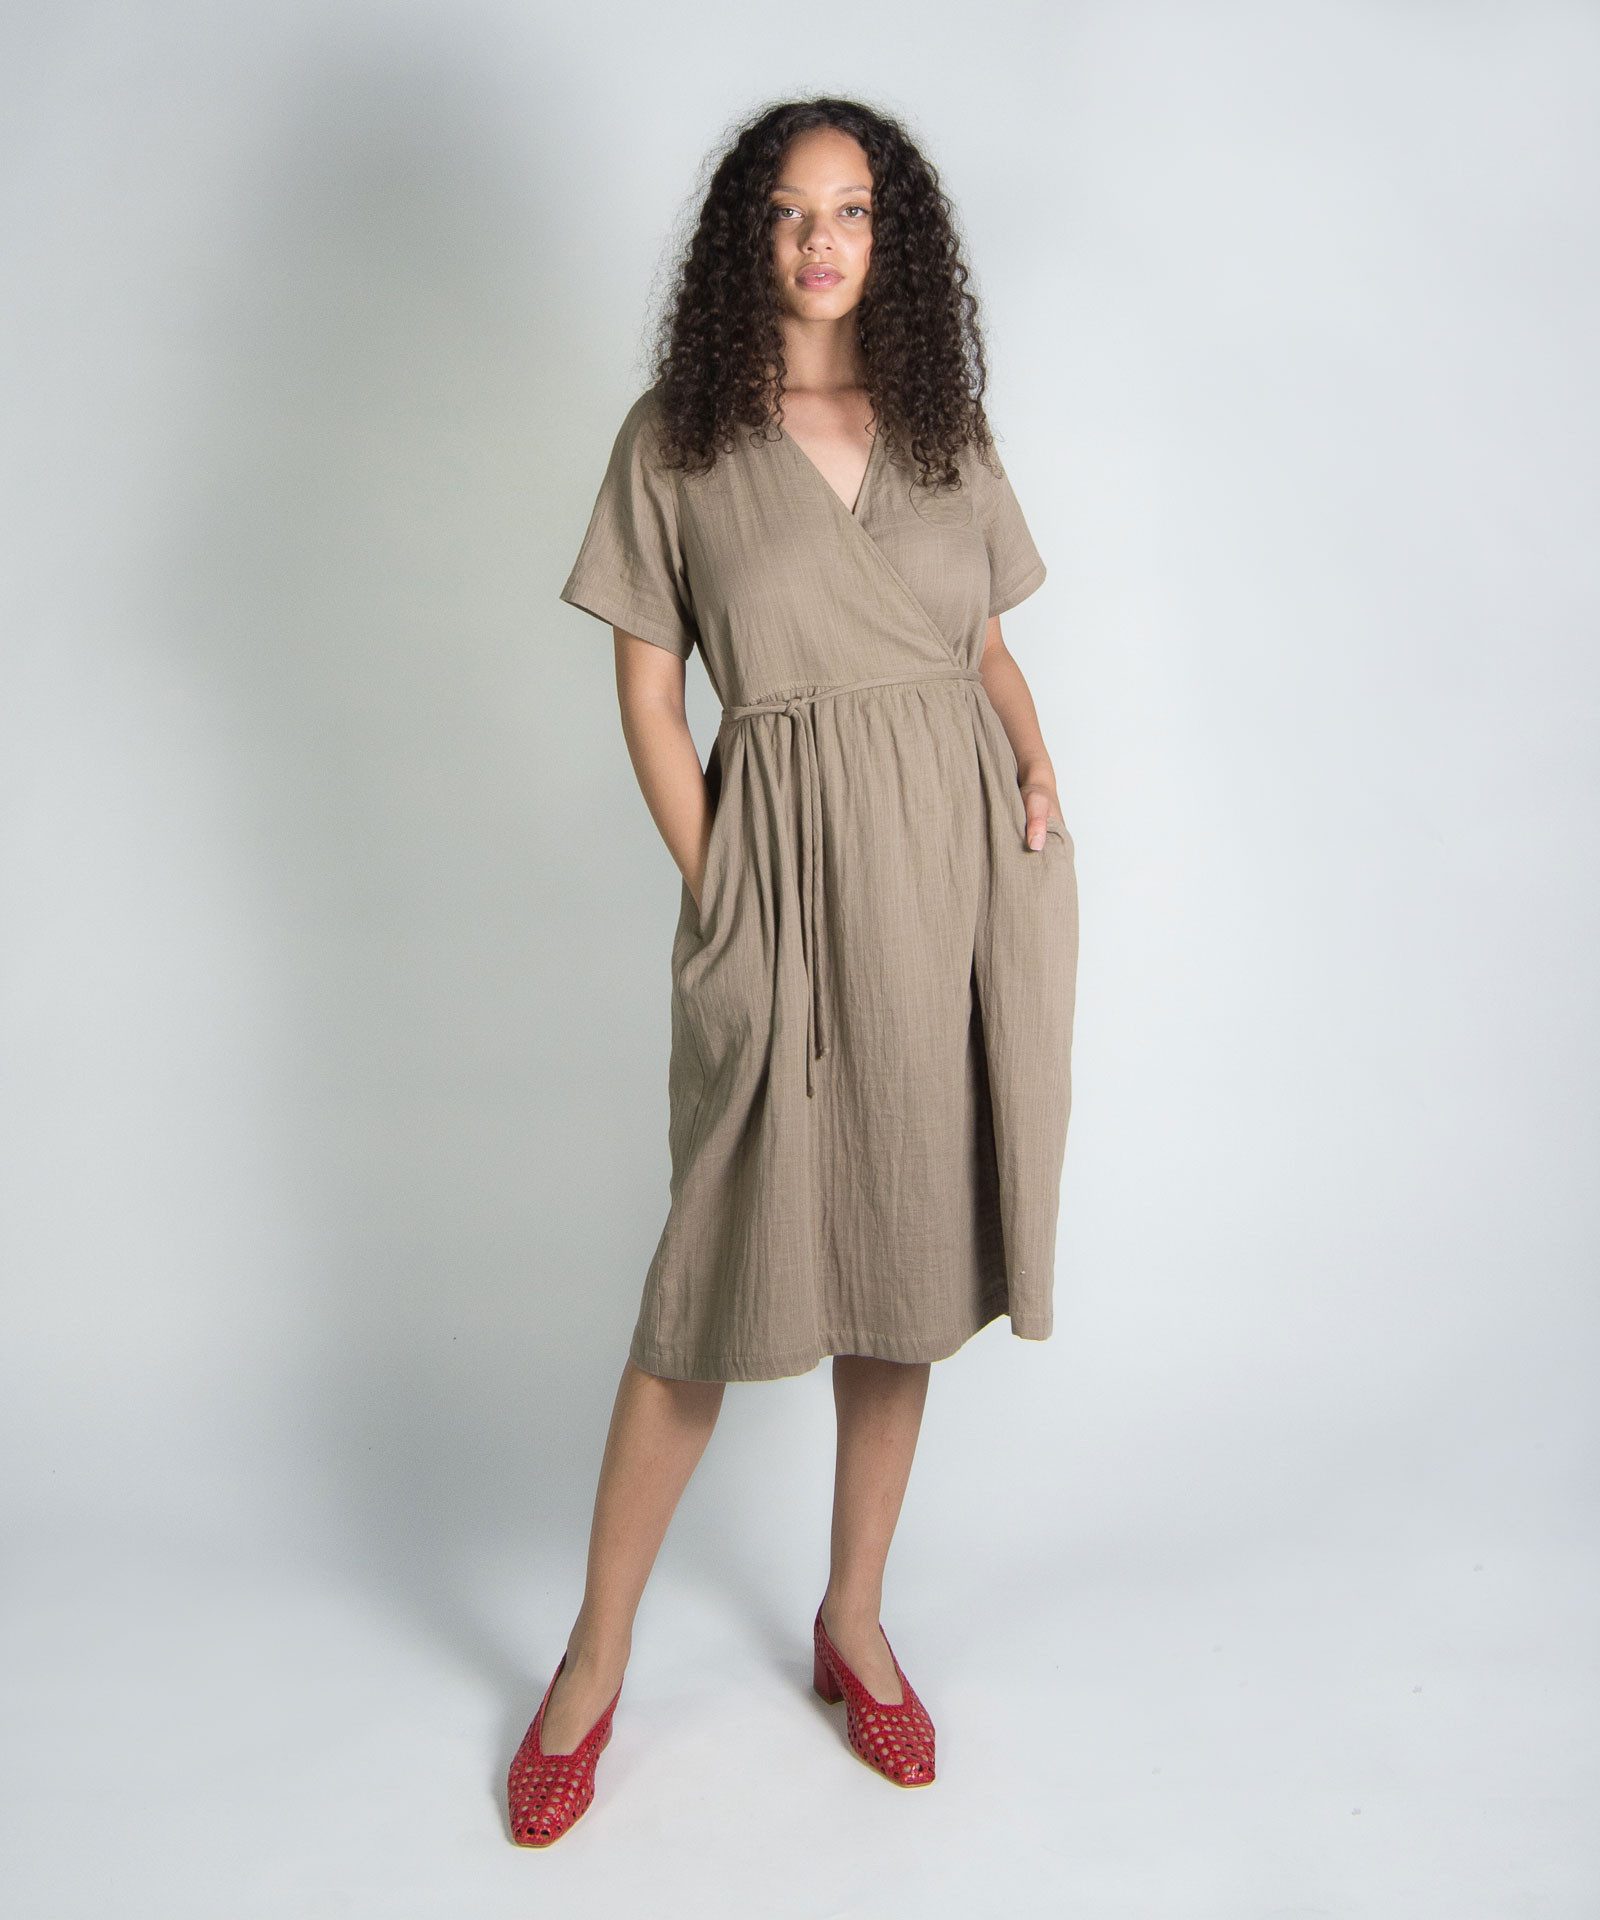 Wrk-shp Summer Wrap Dress Garmentory